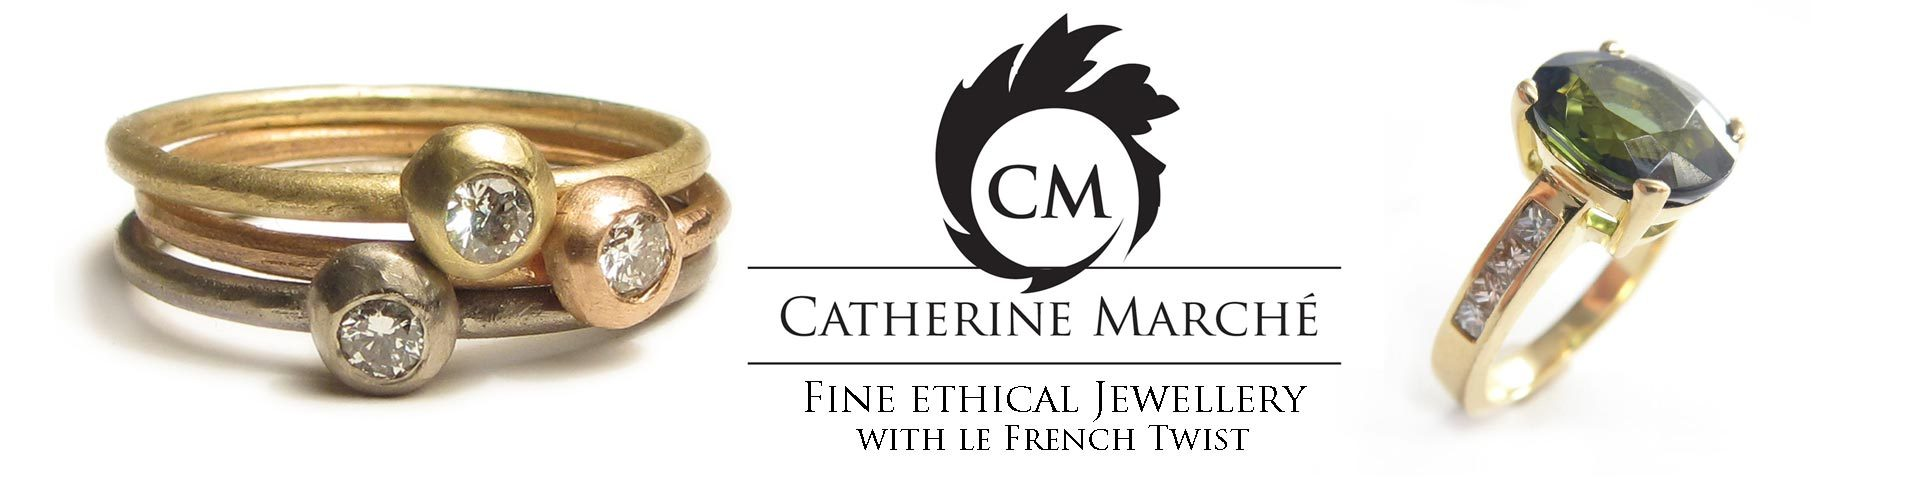 Catherine Marche banner image